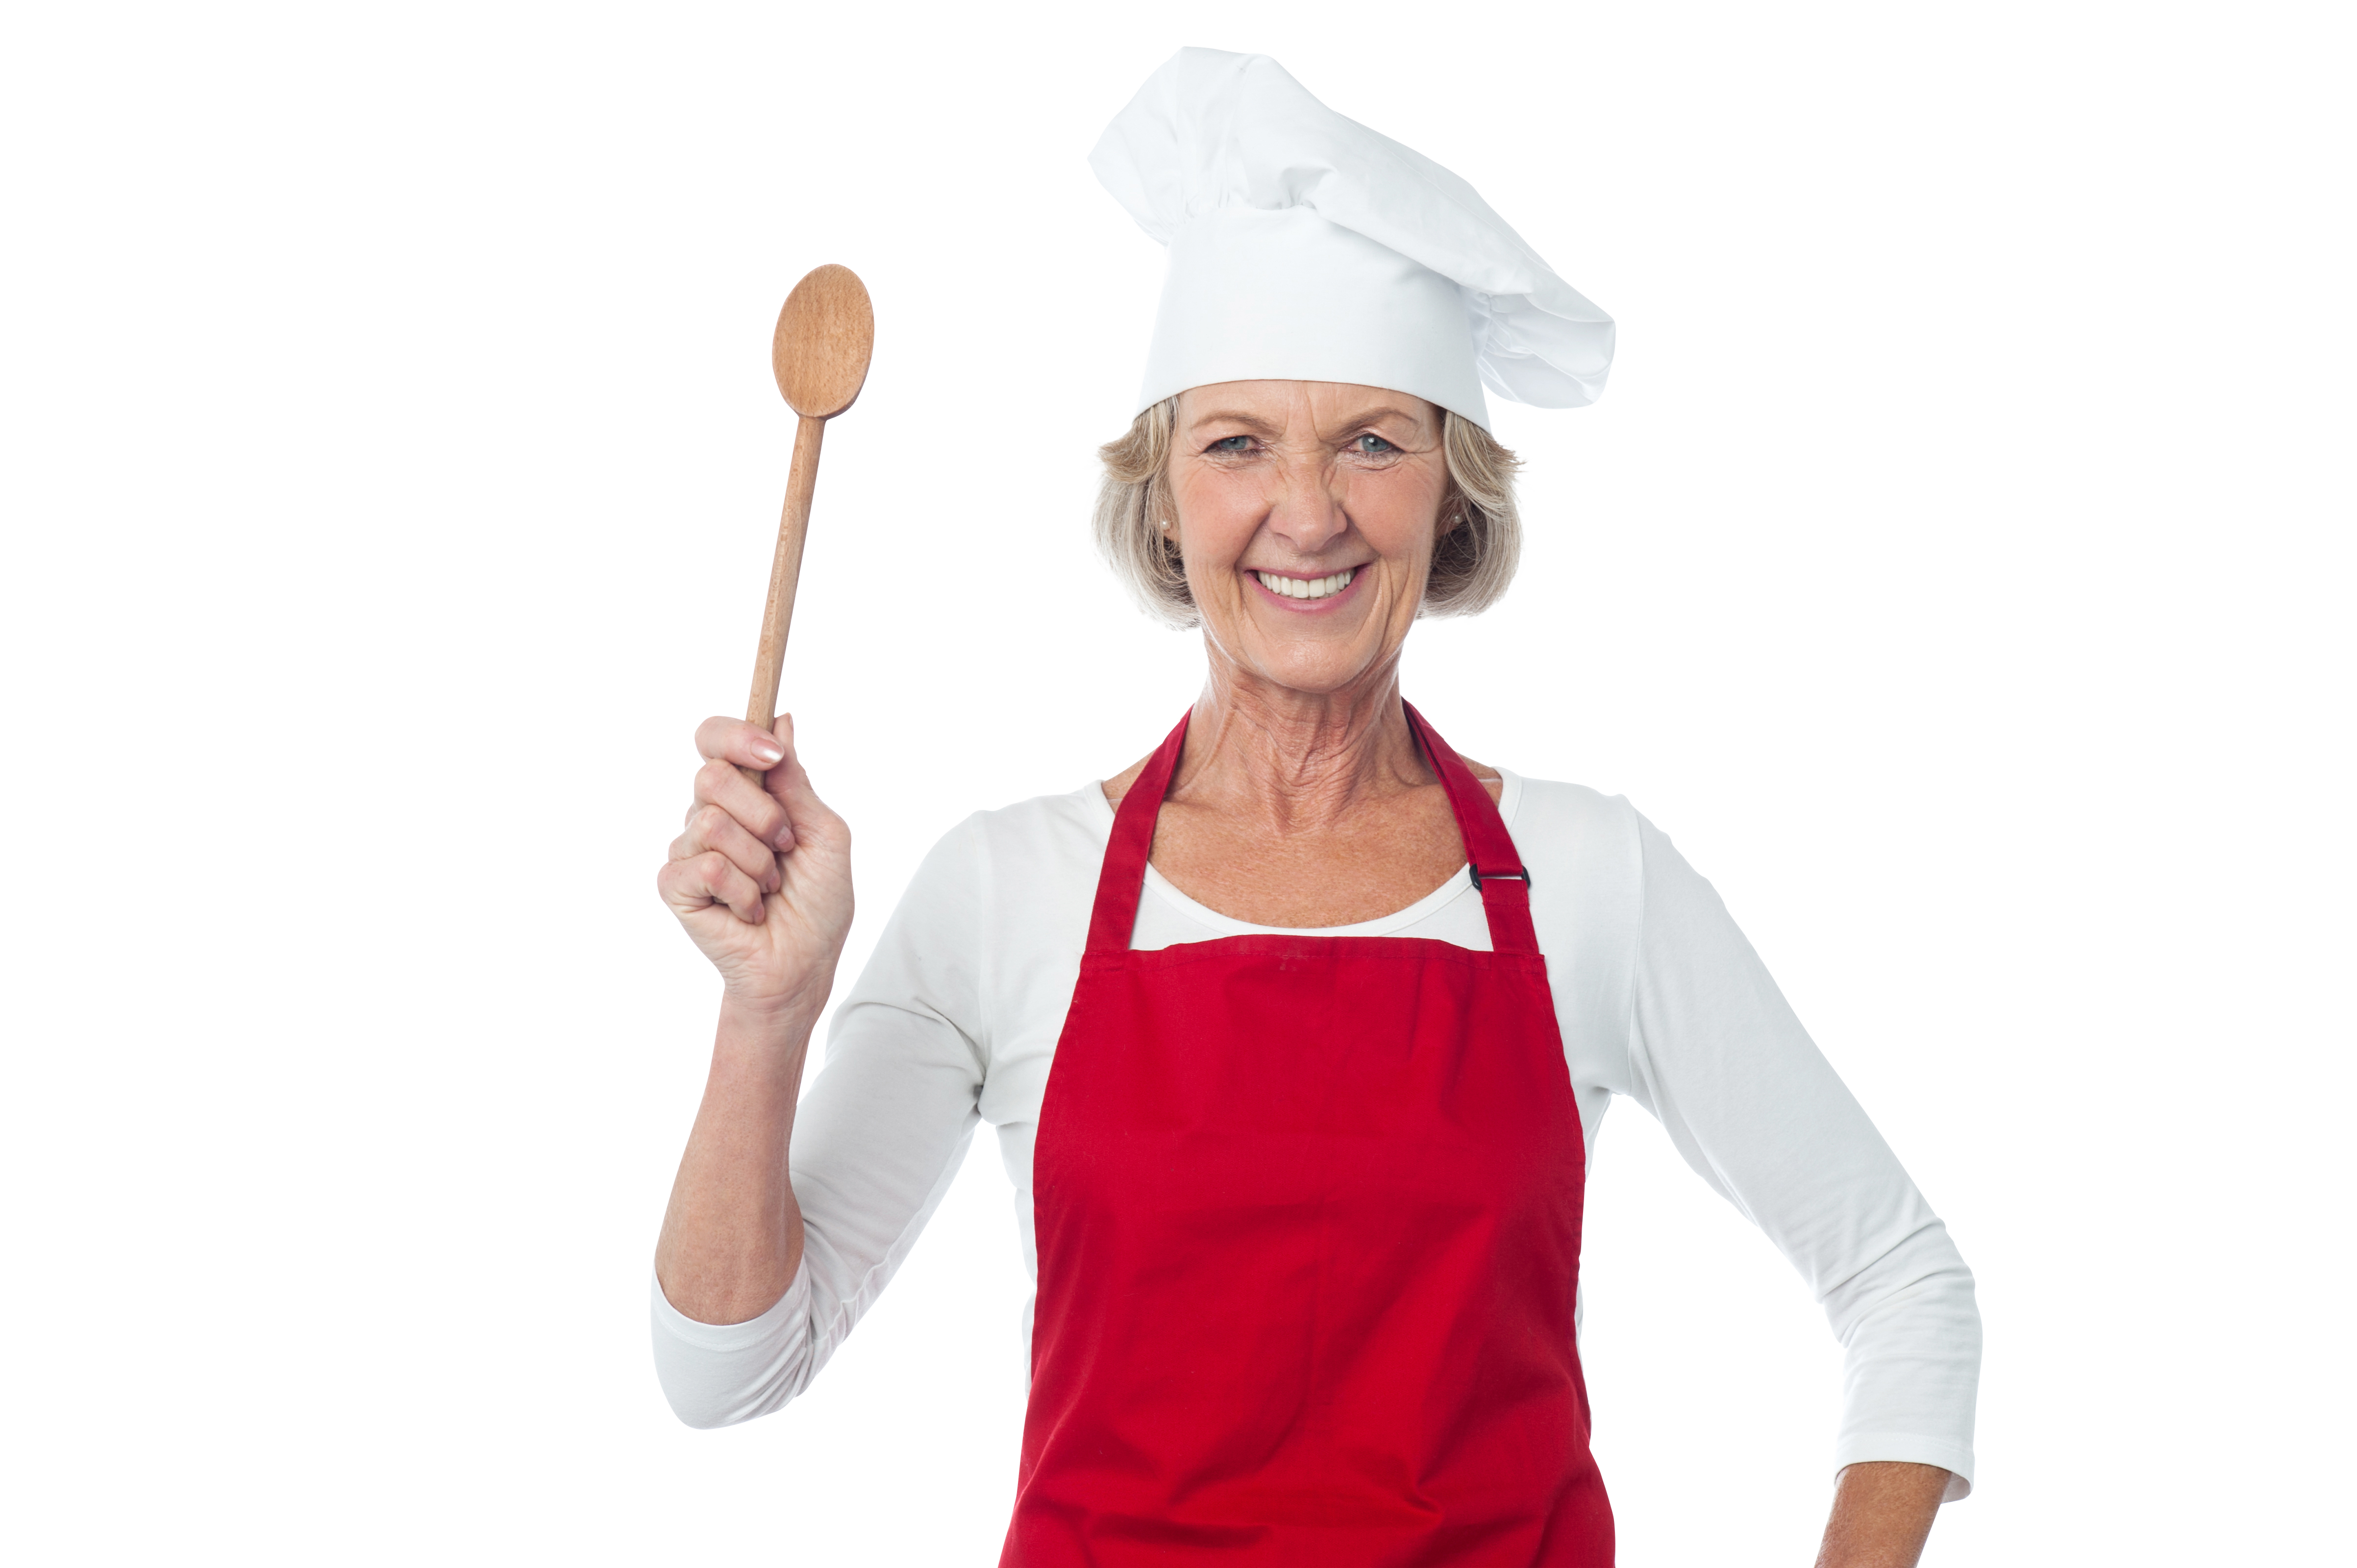 Old Woman PNG Images Transparent Background.